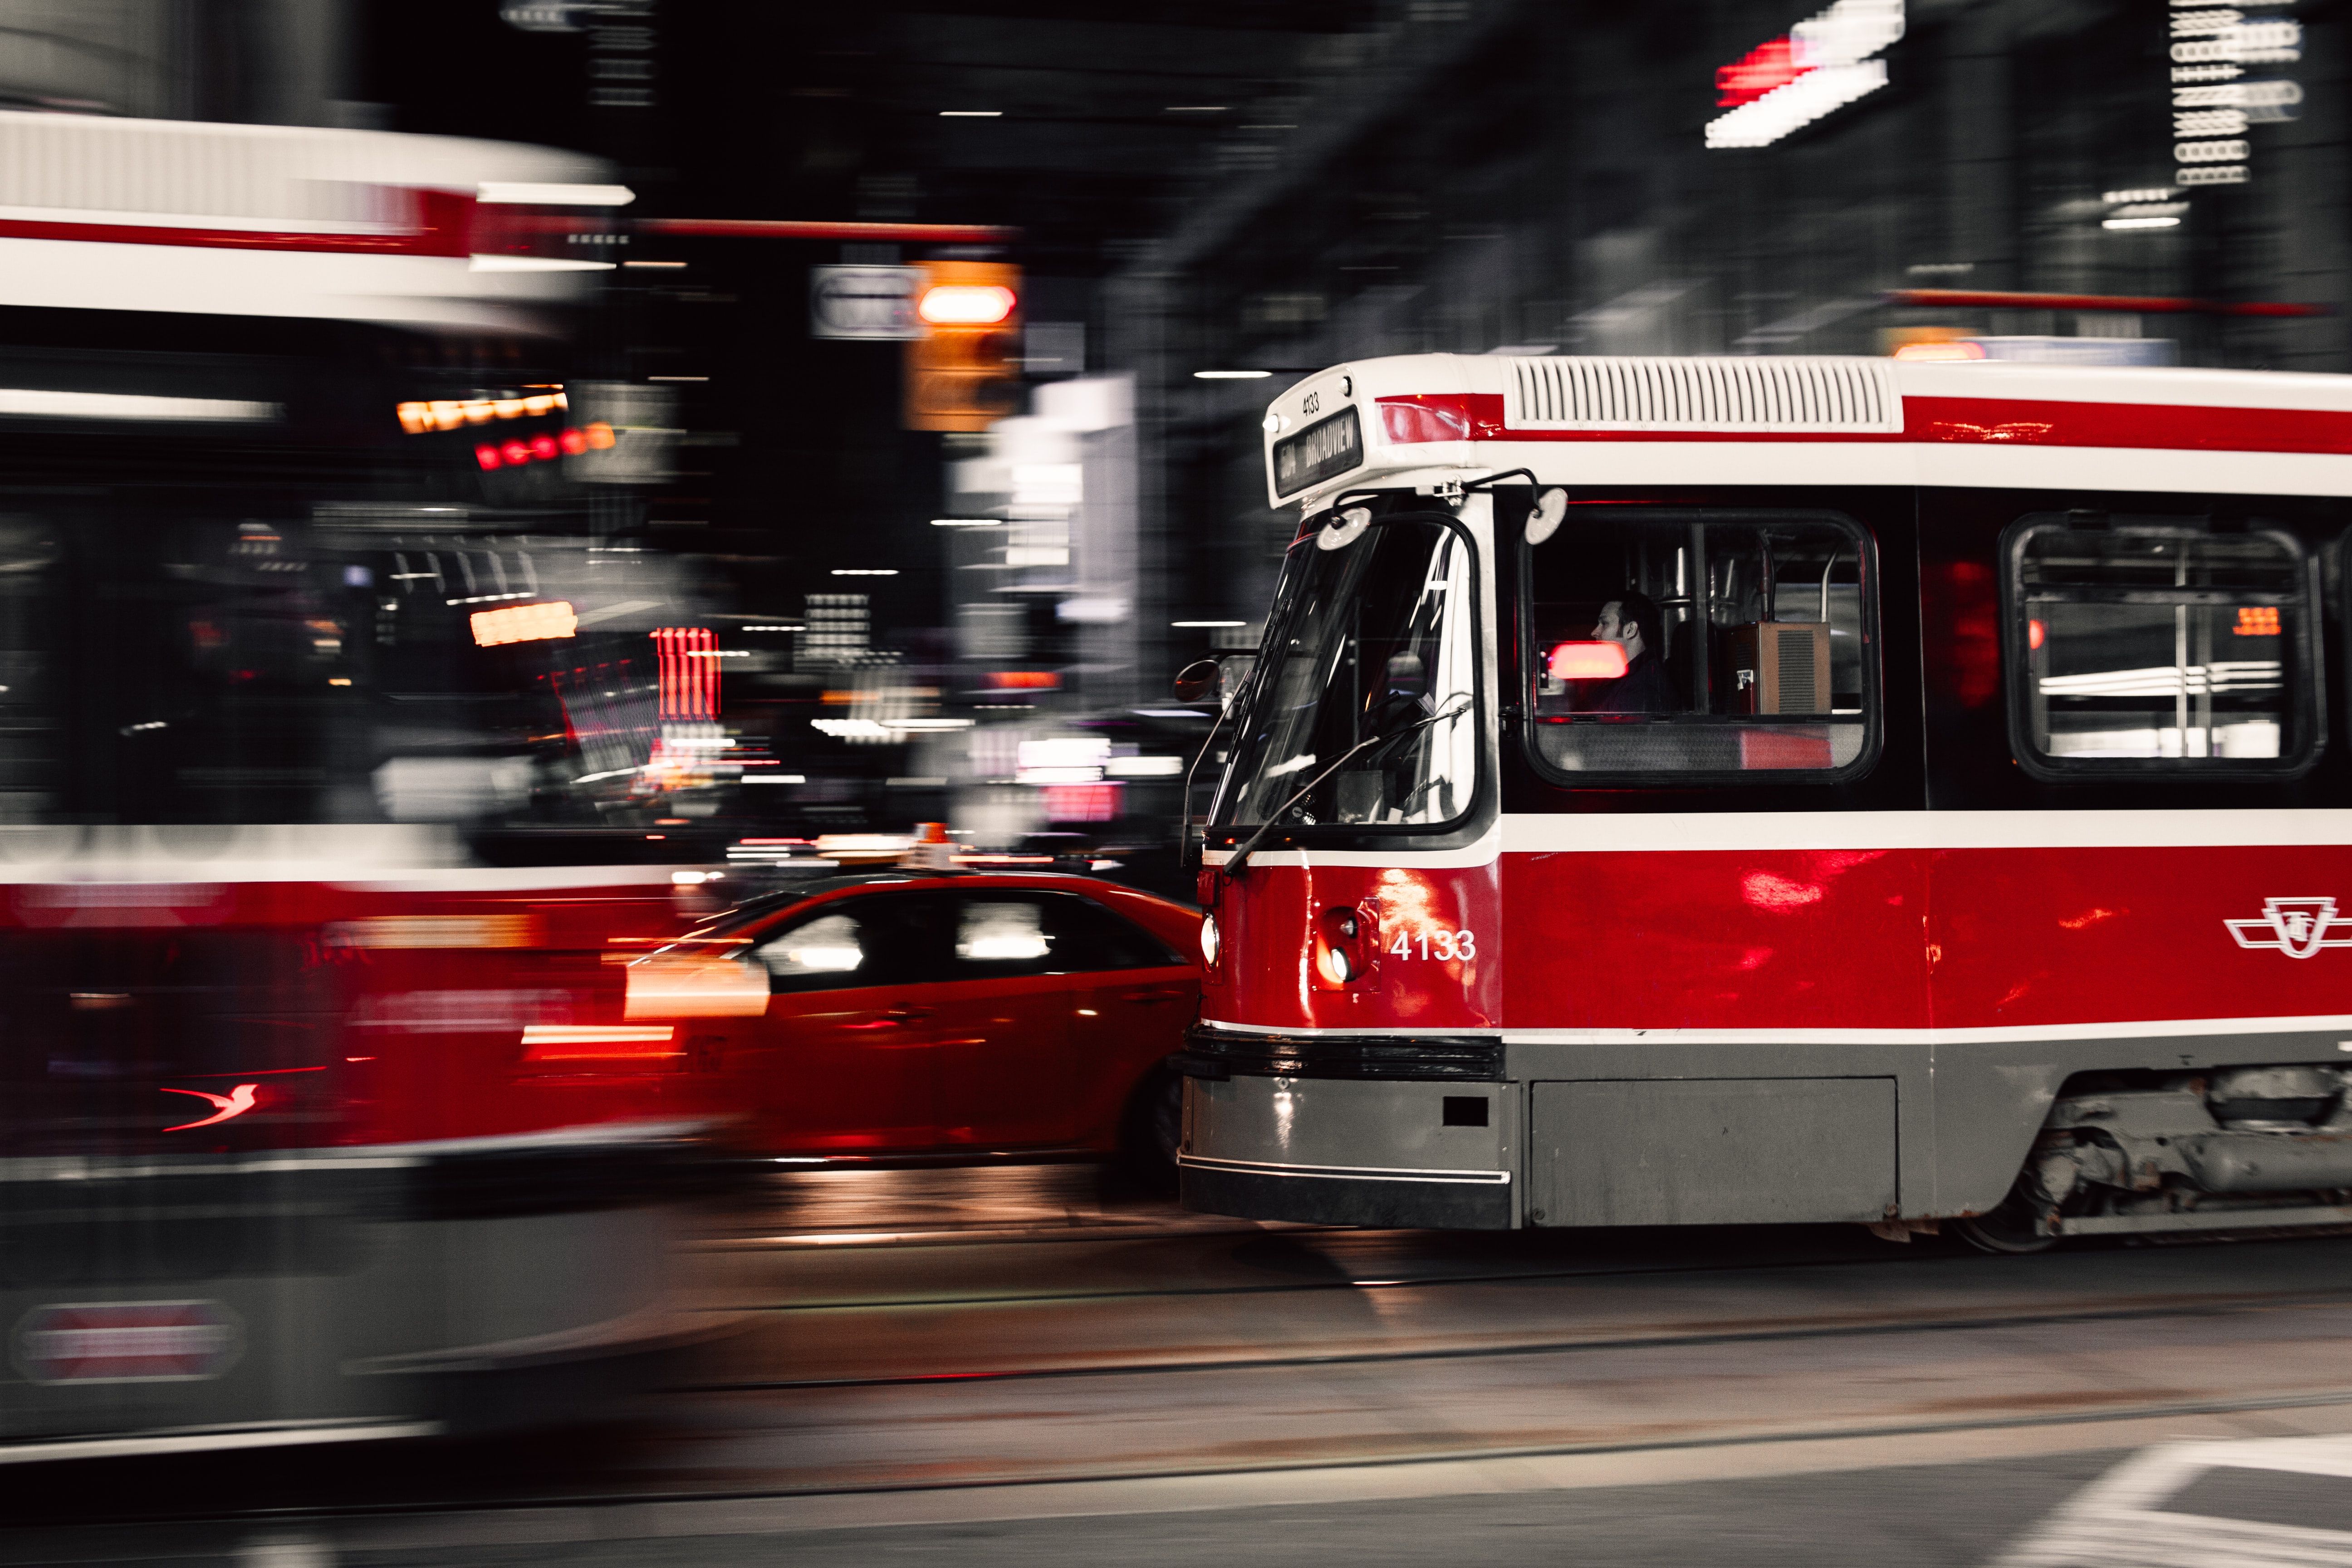 Streetcars speed by on a fash road downtown